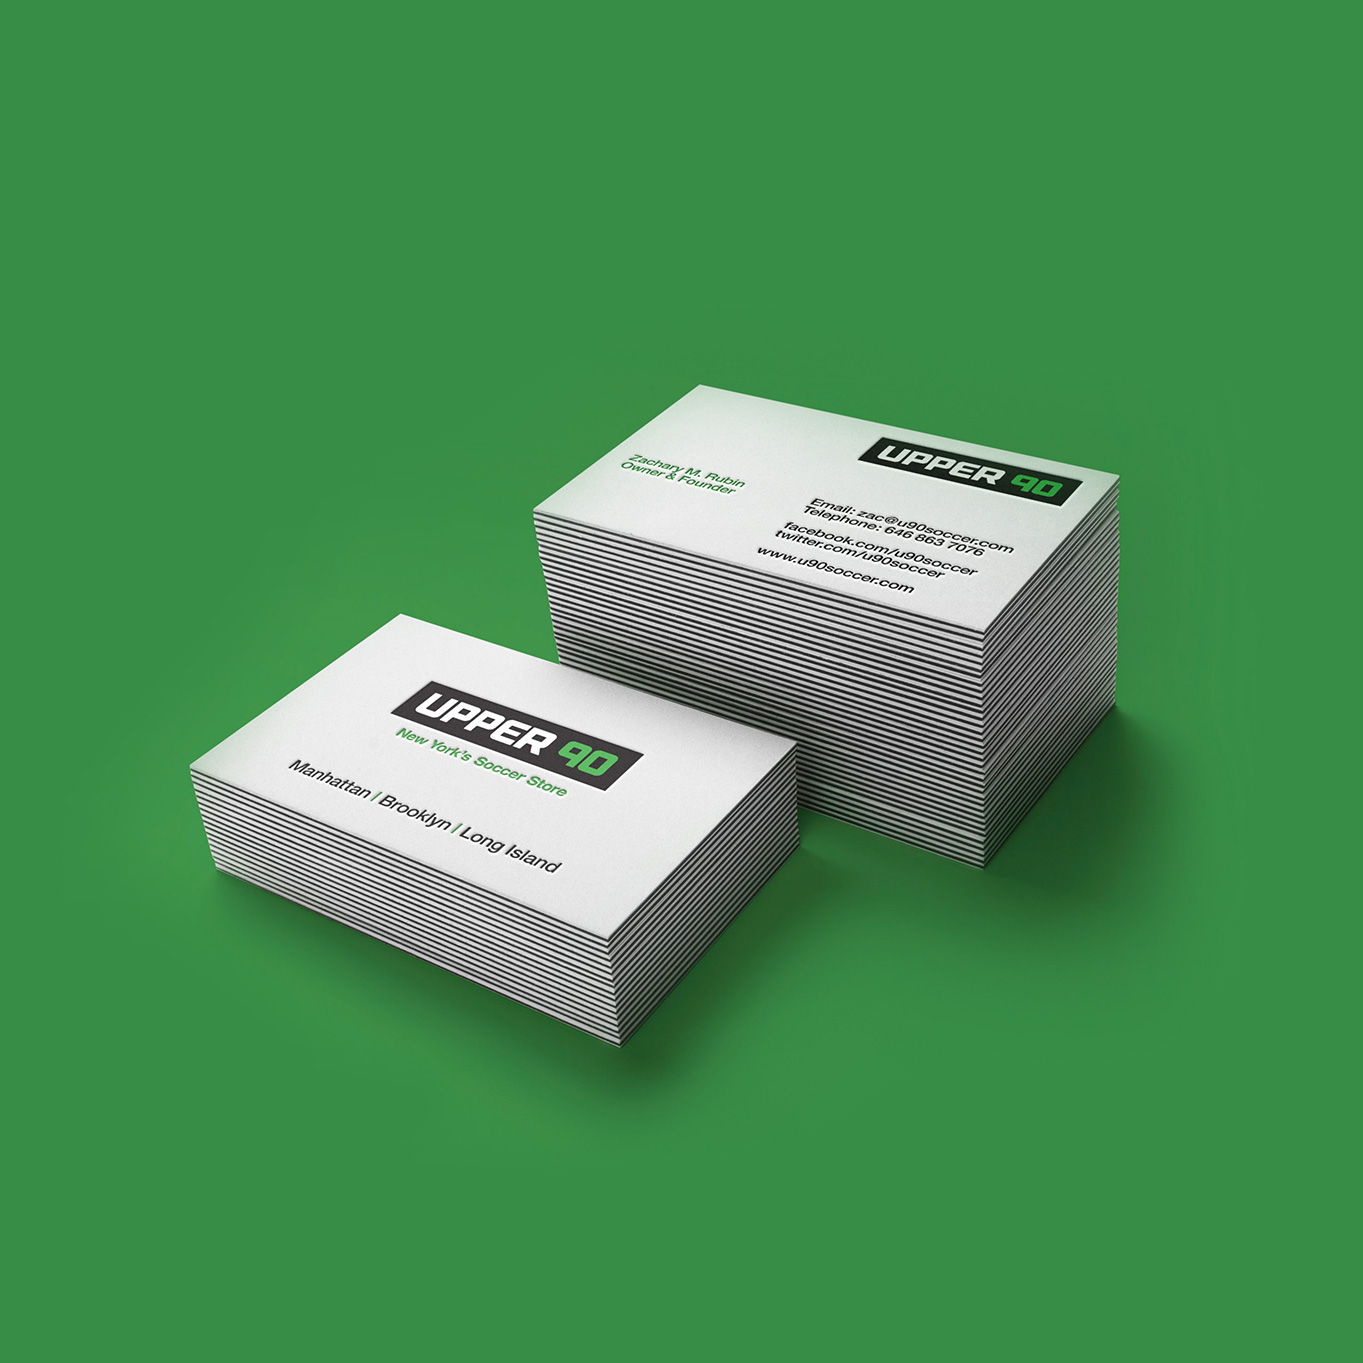 Upper 90 Soccer Business Card Design